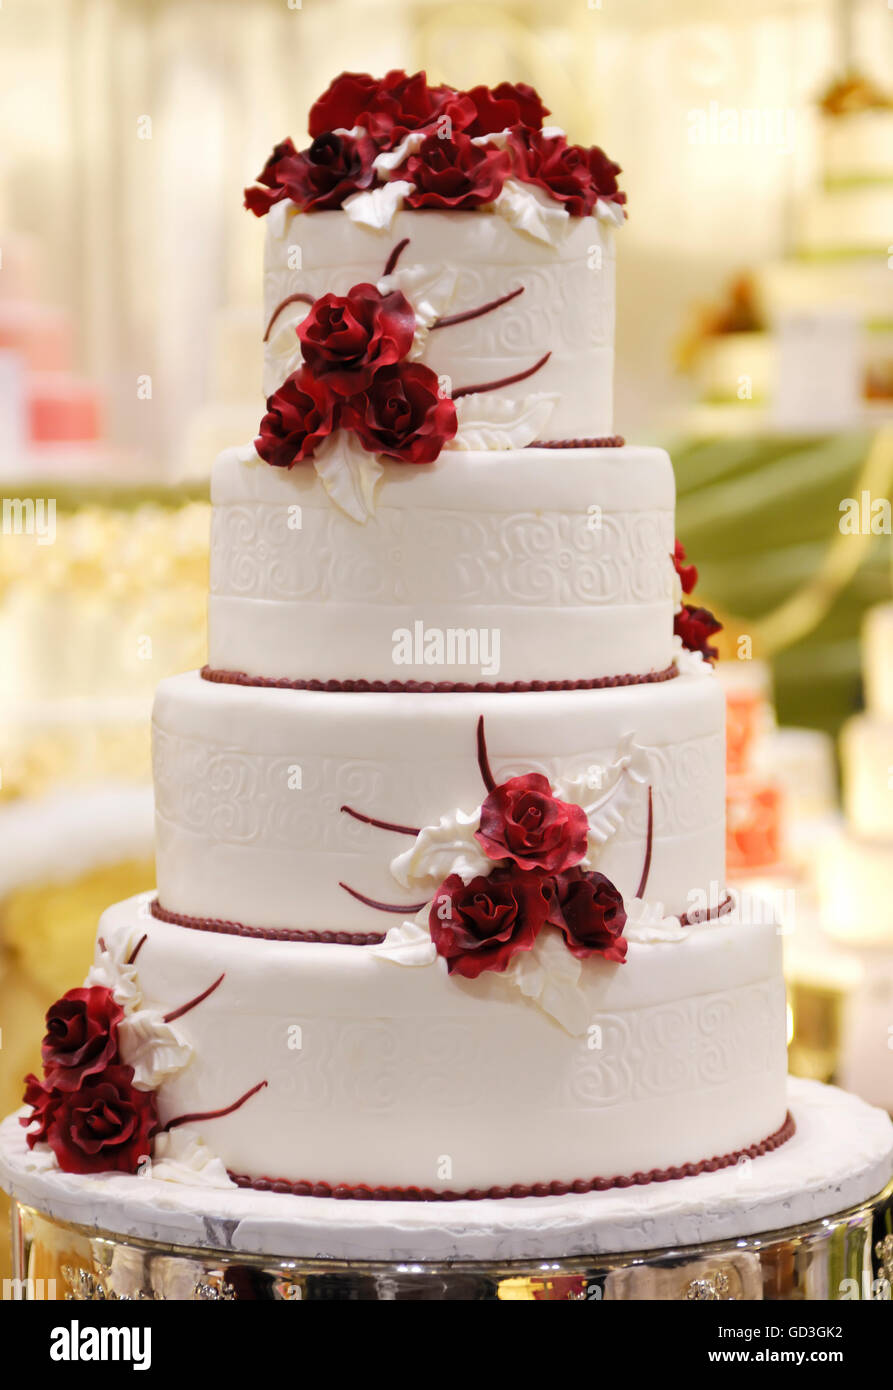 Wedding Cake Decorated Red Roses Stock Photos   Wedding Cake     Tiered wedding cake decorated with red roses   Stock Image